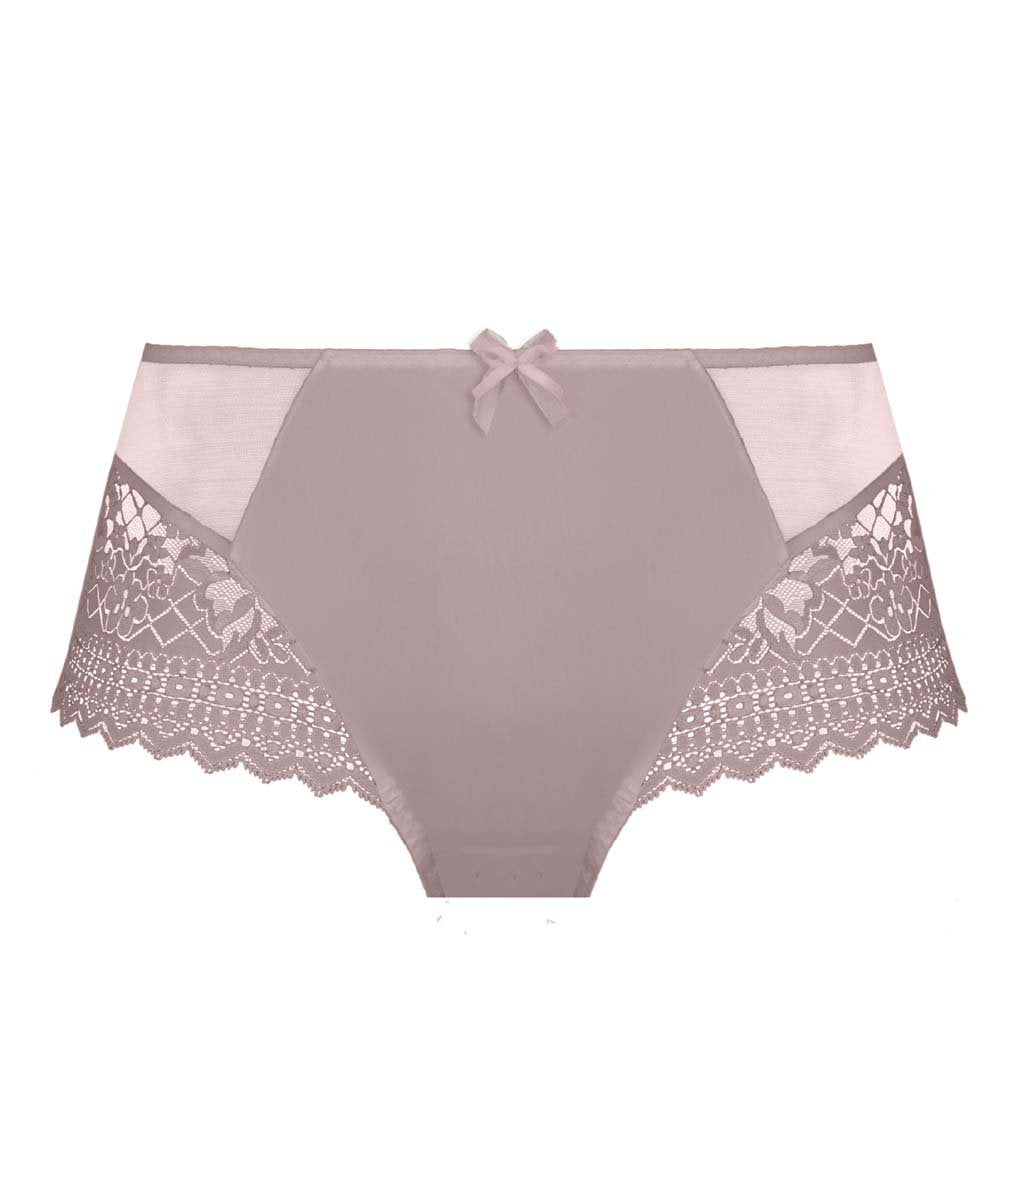 Empreinte 'Melody' (Rose Thé) Full Brief - Sandra Dee - Product Shot - Front